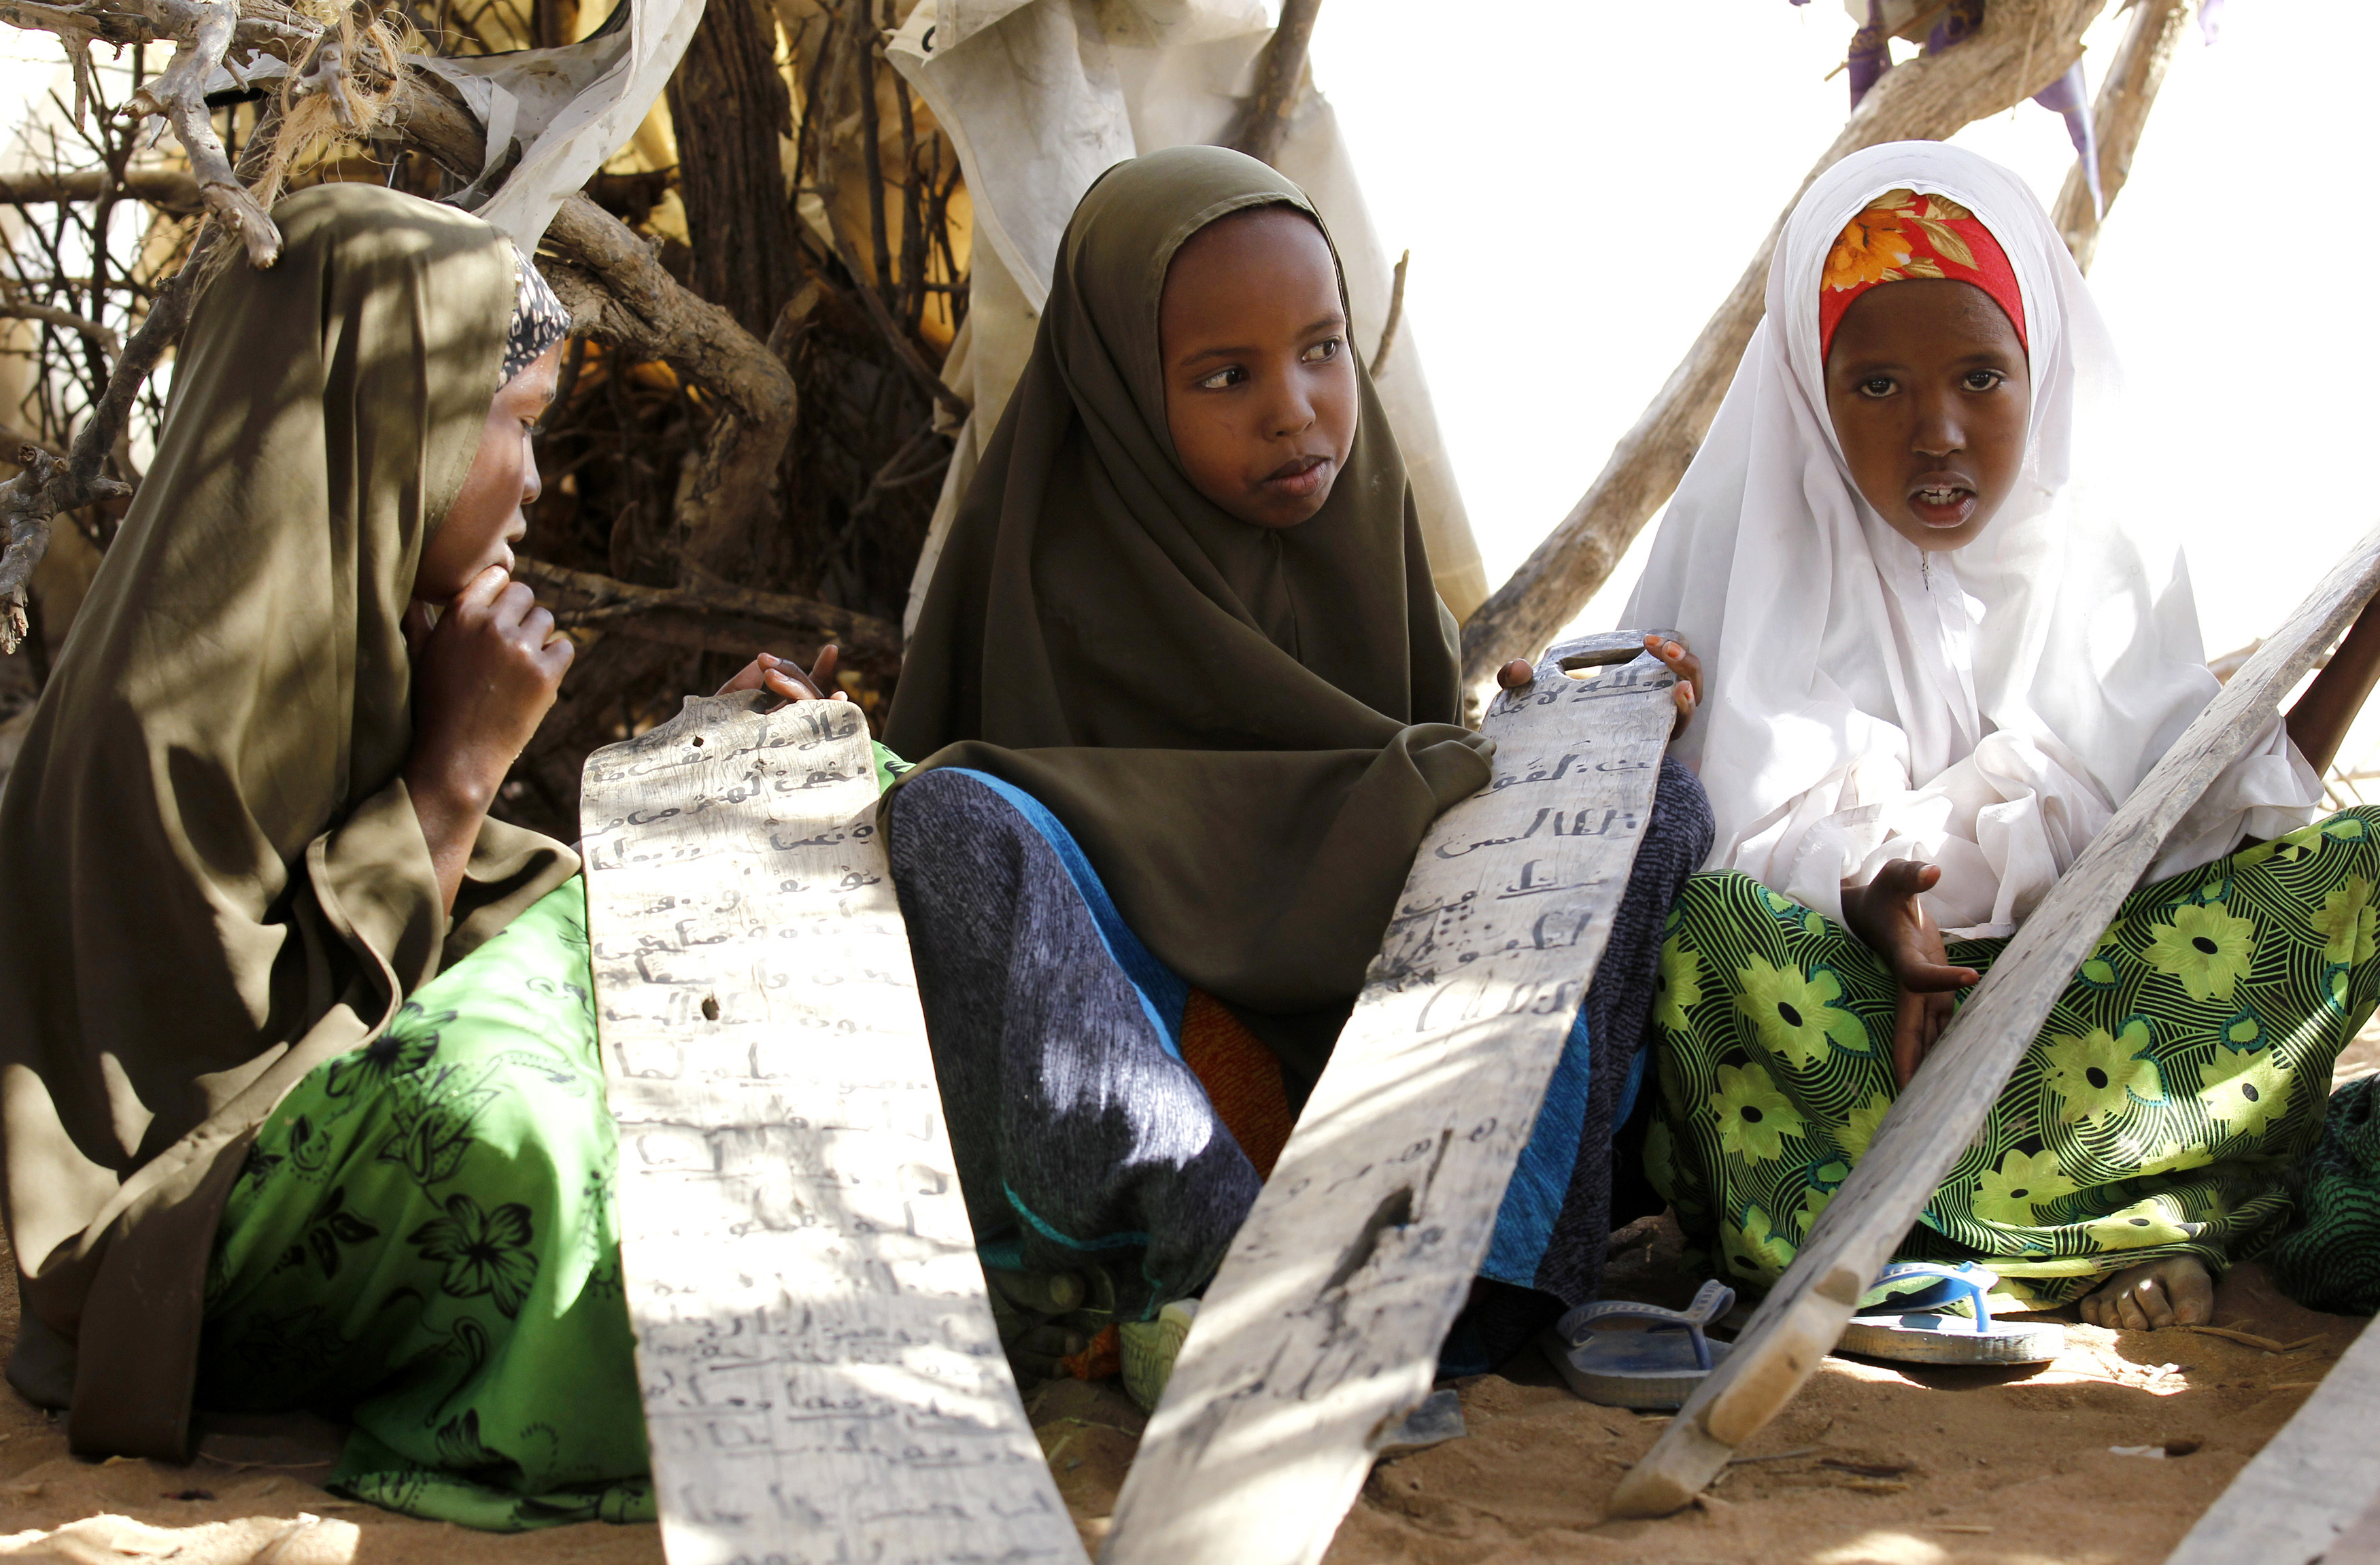 Refugee pupils hold pieces of wood with Quranic verses written on them at a makeshift madrasa, or Islamic school, under a tree at the IFO2 east camp within the Dadaab refugee complex, near the Kenya-Somalia border, October 29, 2014. REUTERS/Thomas Mukoya (KENYA - Tags: EDUCATION SOCIETY RELIGION)